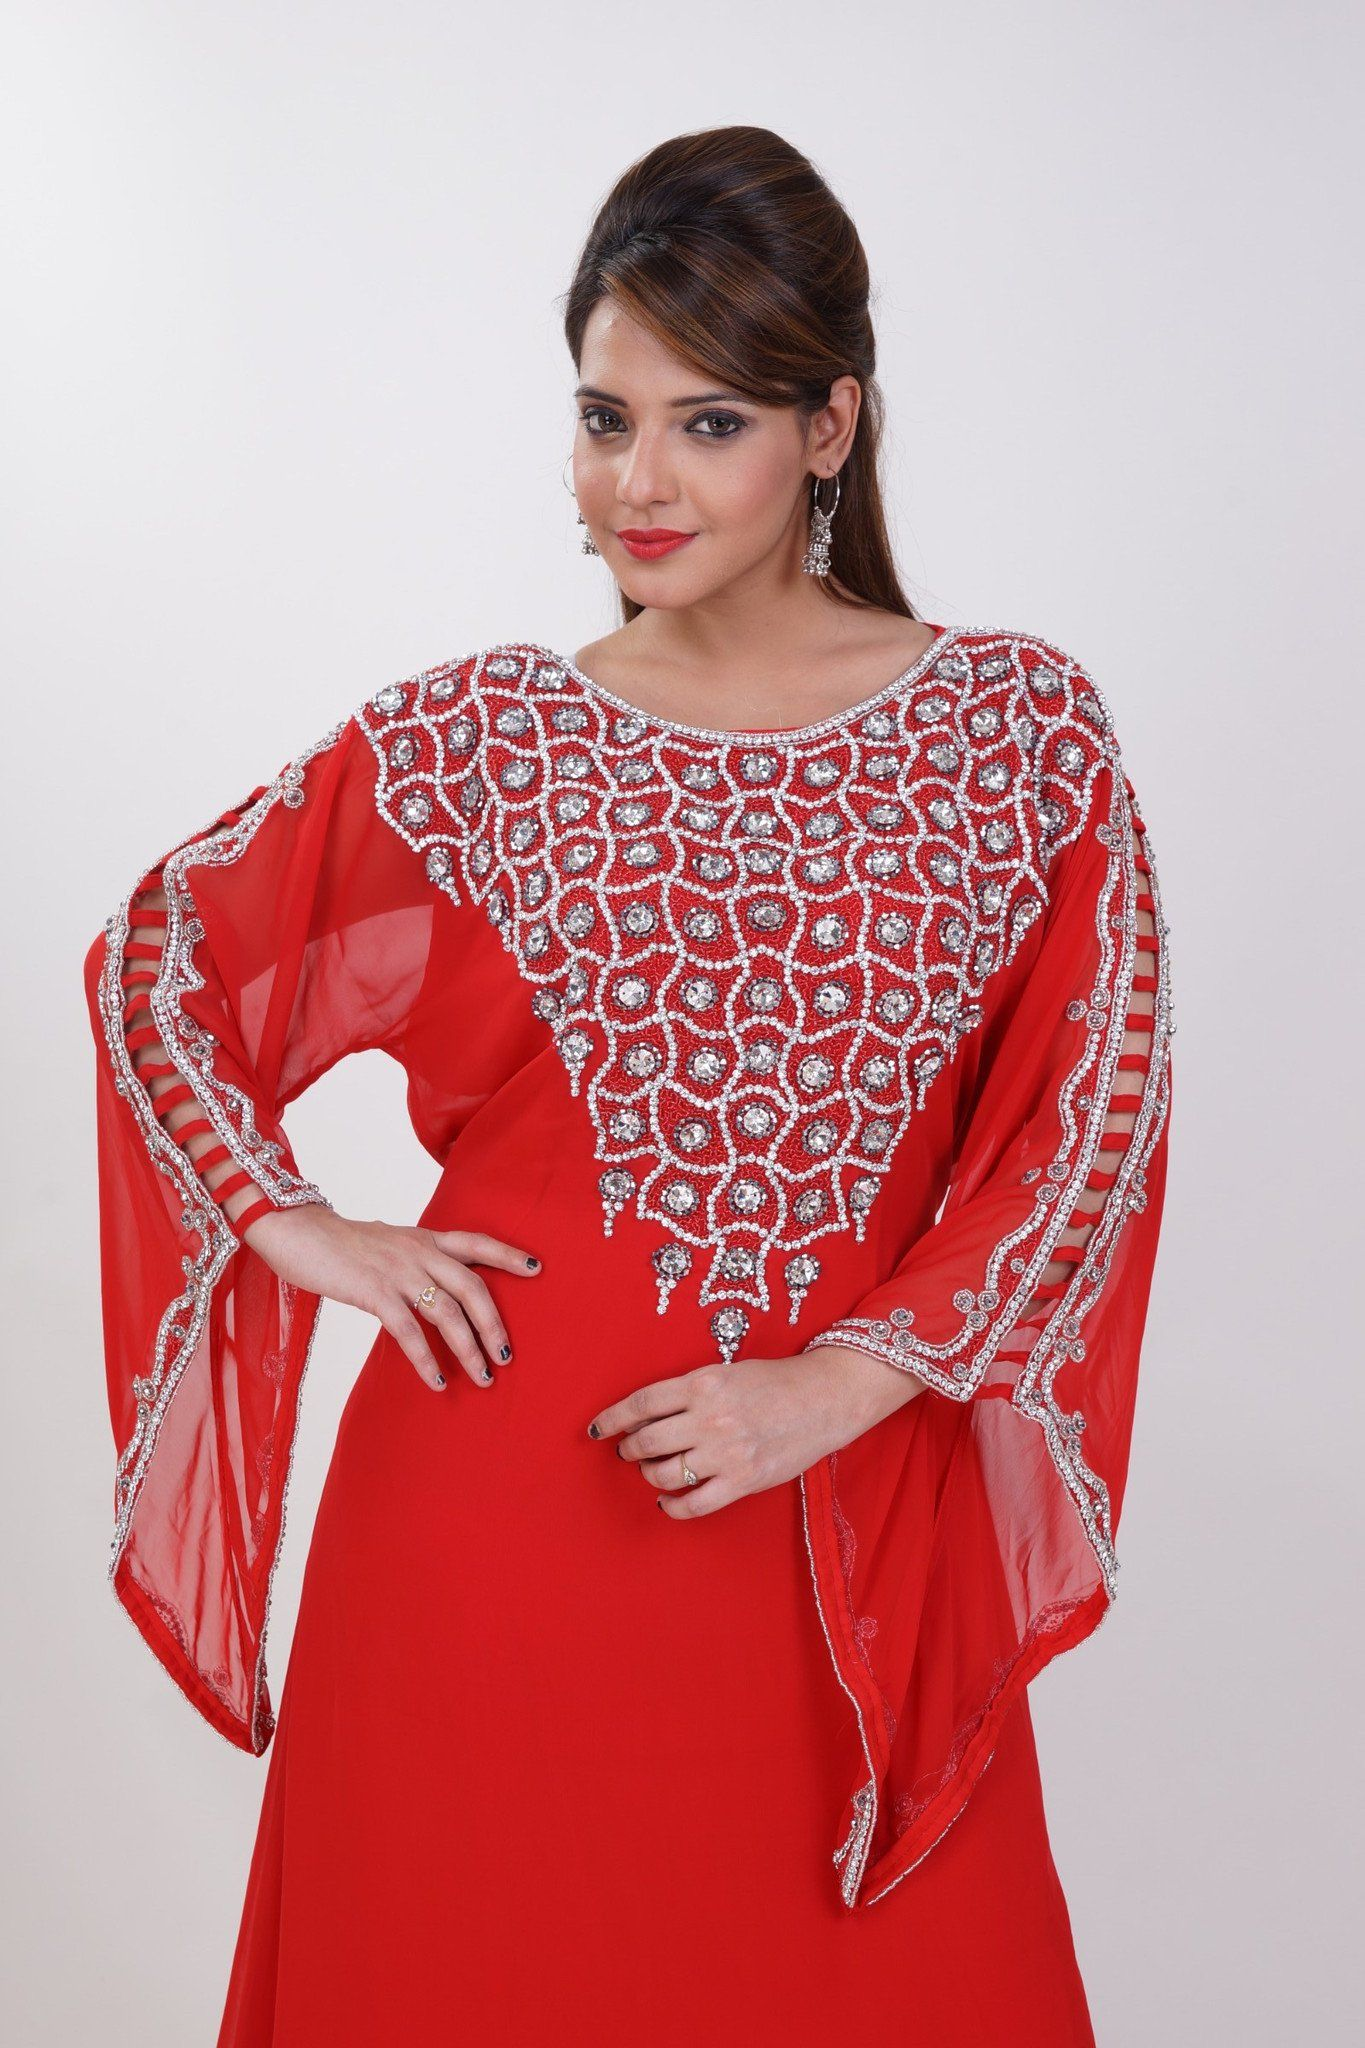 Amany Dubai Kaftan Women Dress | Products | Pinterest